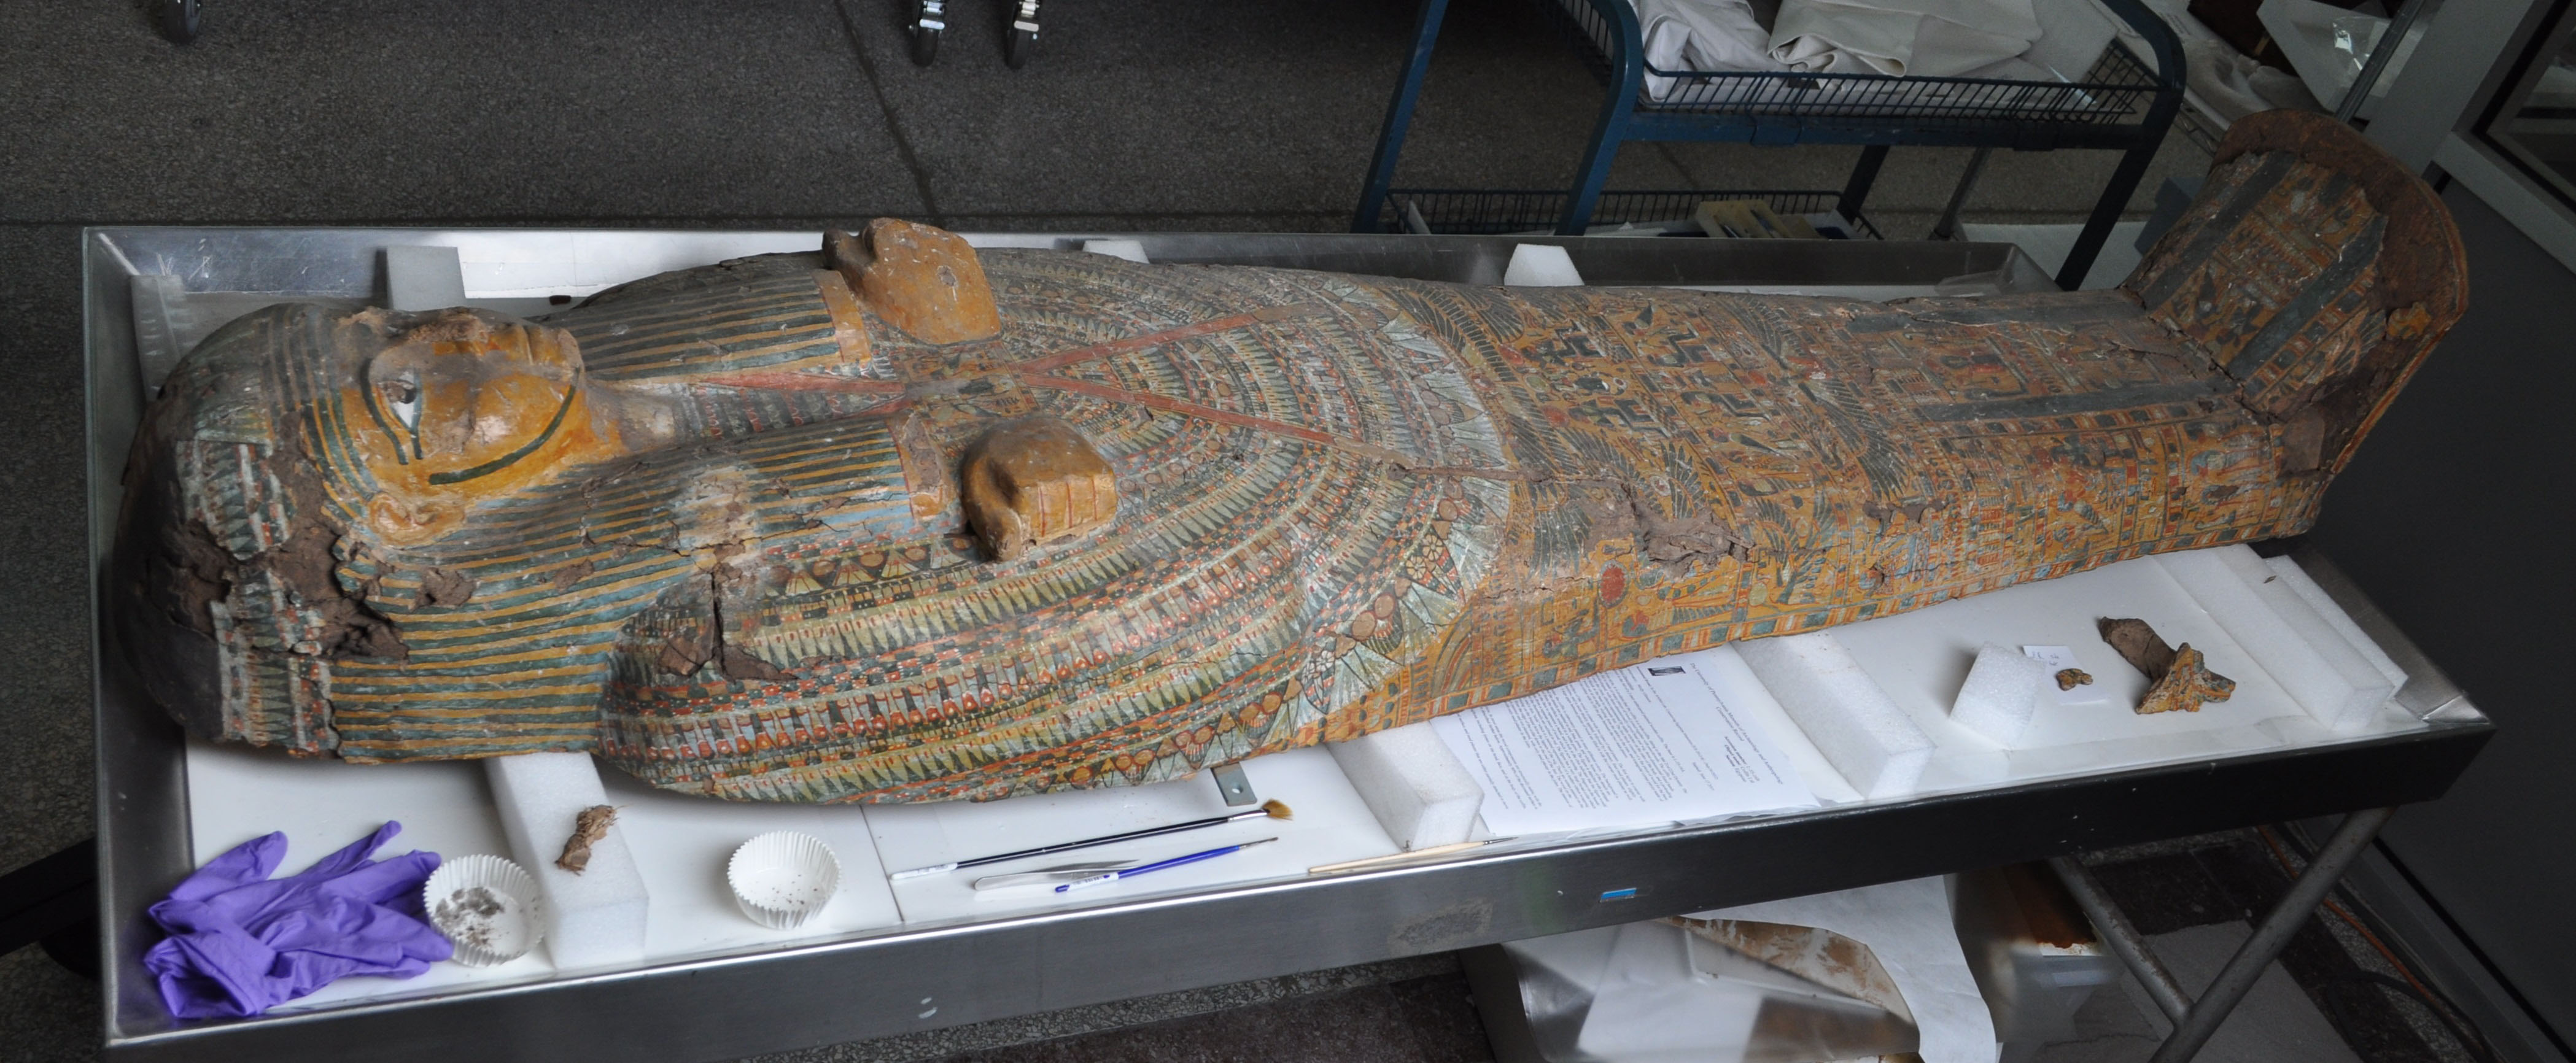 Overall before treatment image of the stola coffin lid, L-55-16B